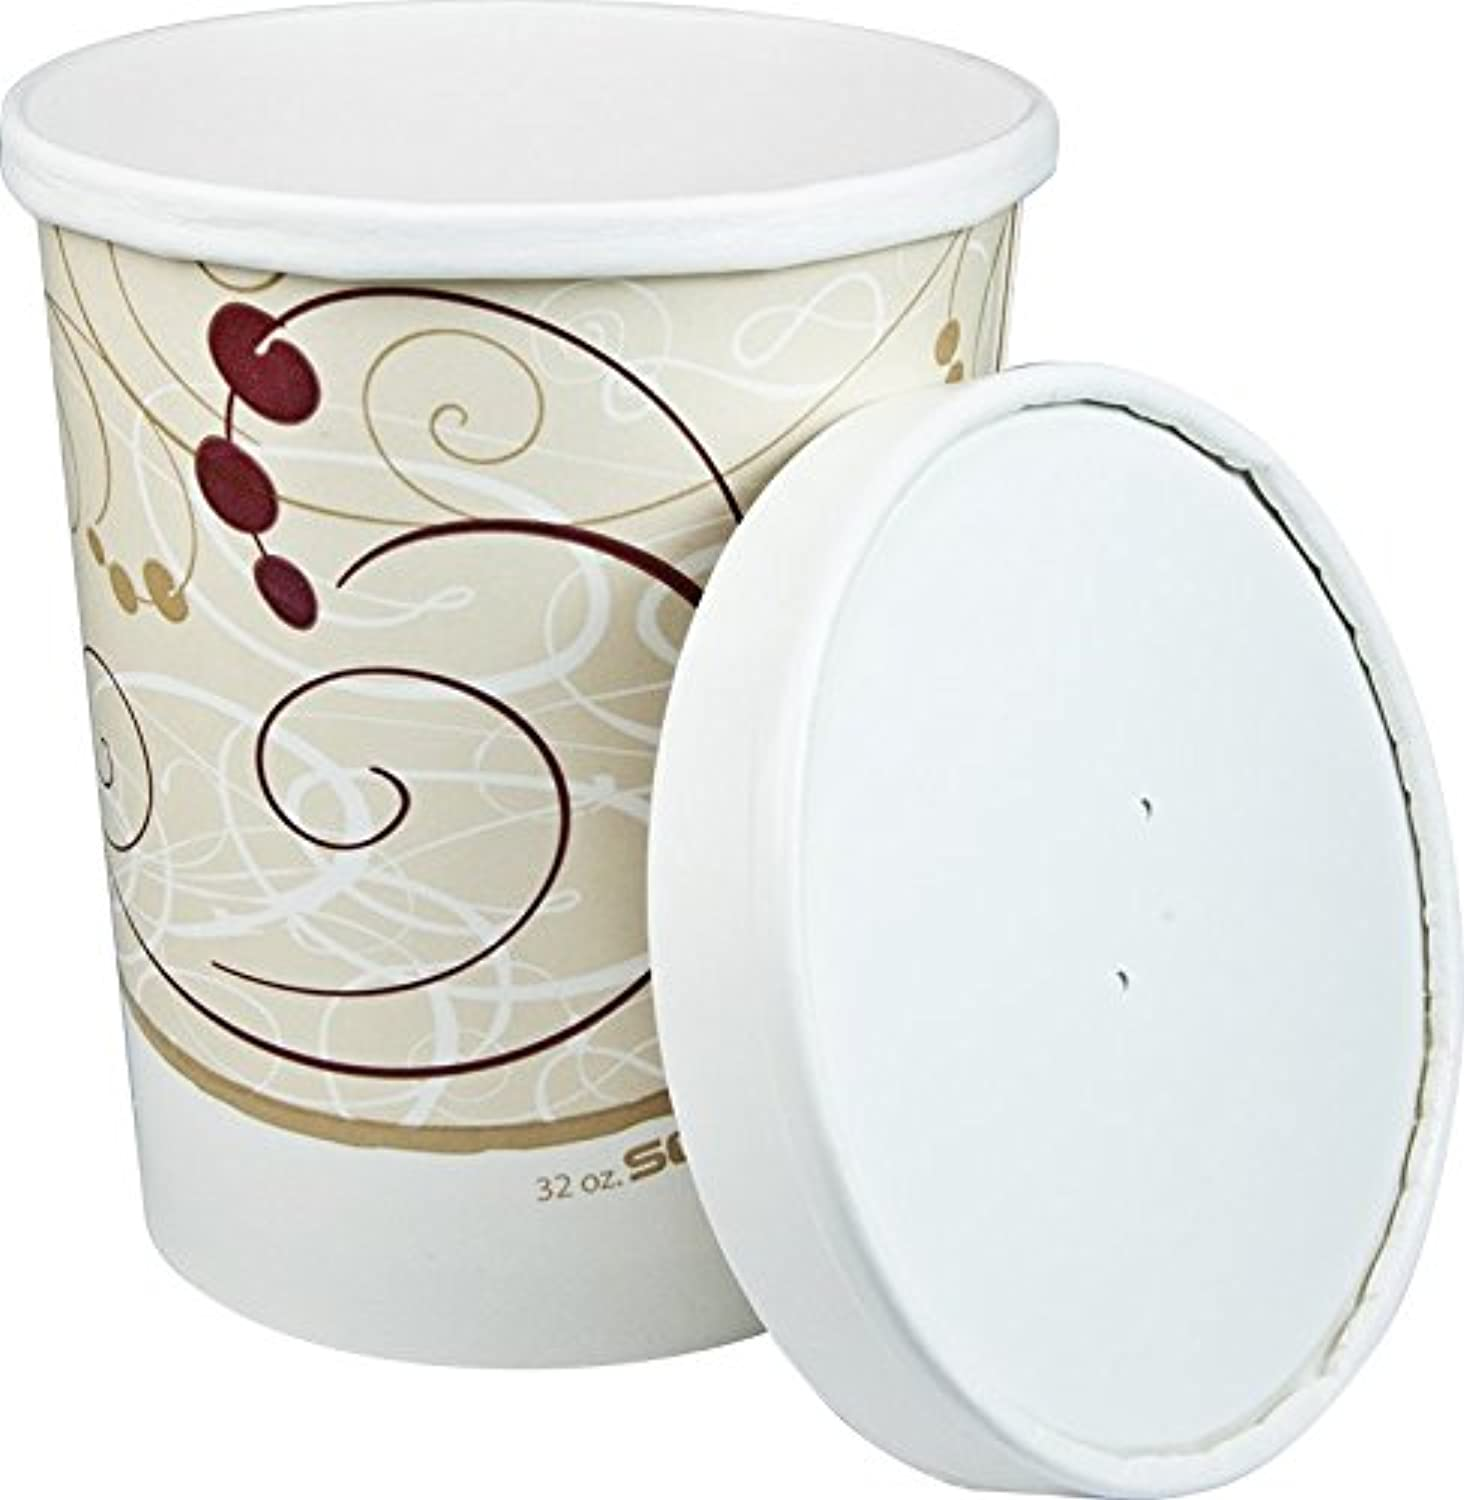 Solo KHB32A-J8000 32 oz Symphony Paper Food Container And Lid (Case of 250 Containers w Lids)